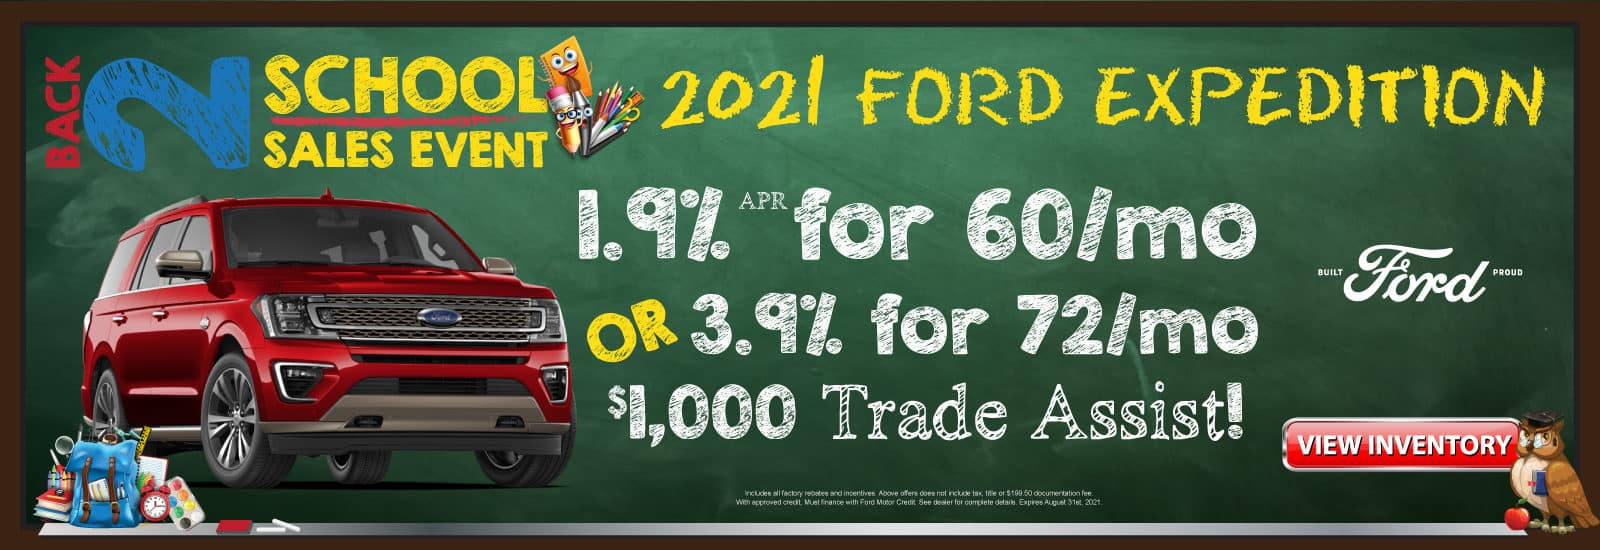 2021-Ford-Expedition-Web-Banner-1600×550 (1)